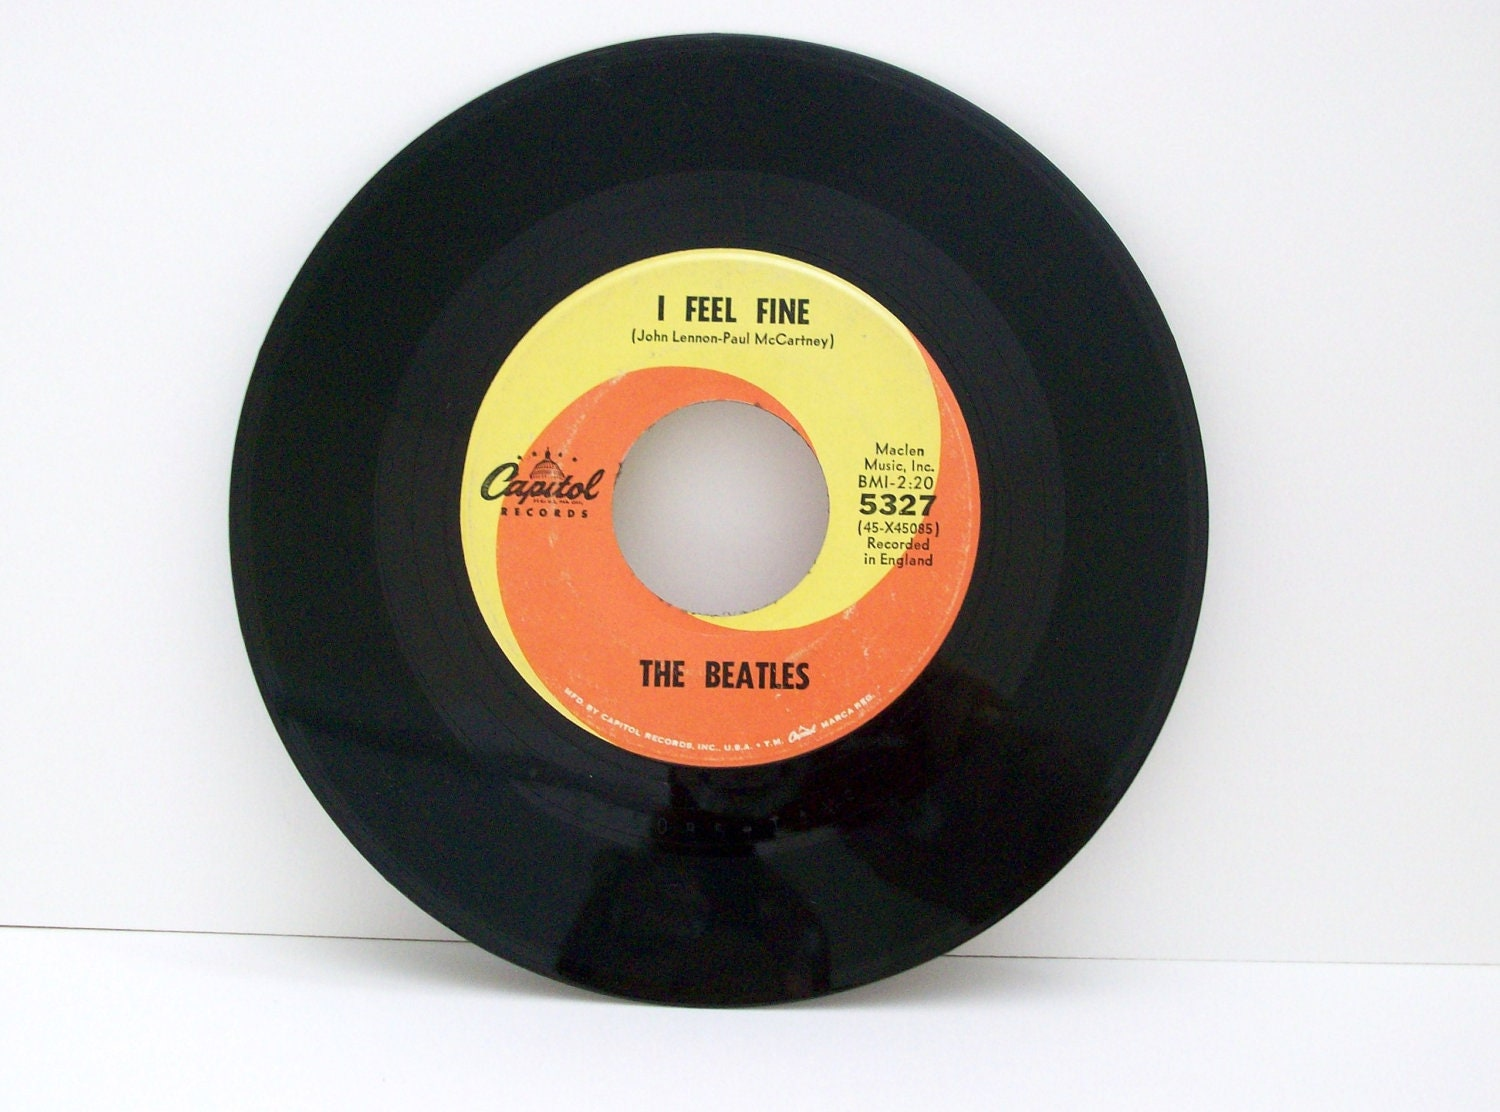 The Beatles 45 Vinyl Record I Feel Fine She S A Woman By